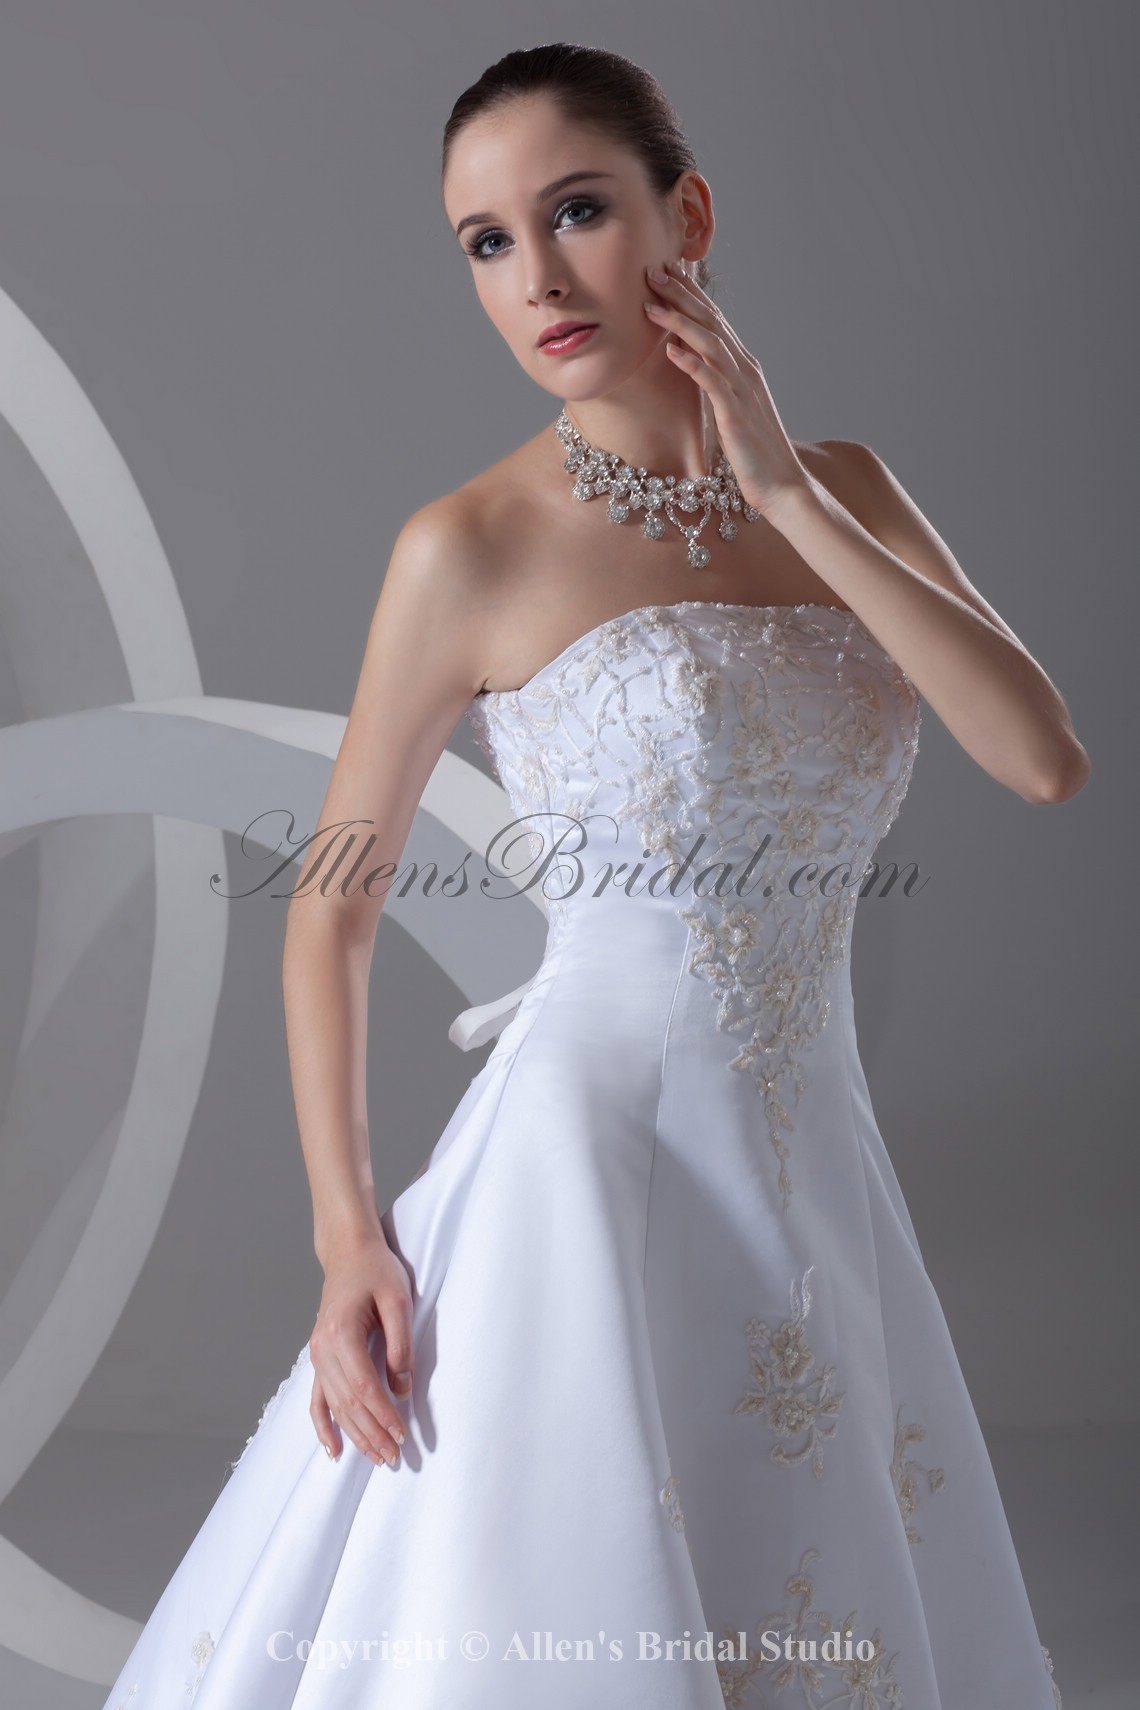 /900-7217/satin-strapless-neckline-chapel-train-a-line-embroidered-wedding-dress.jpg